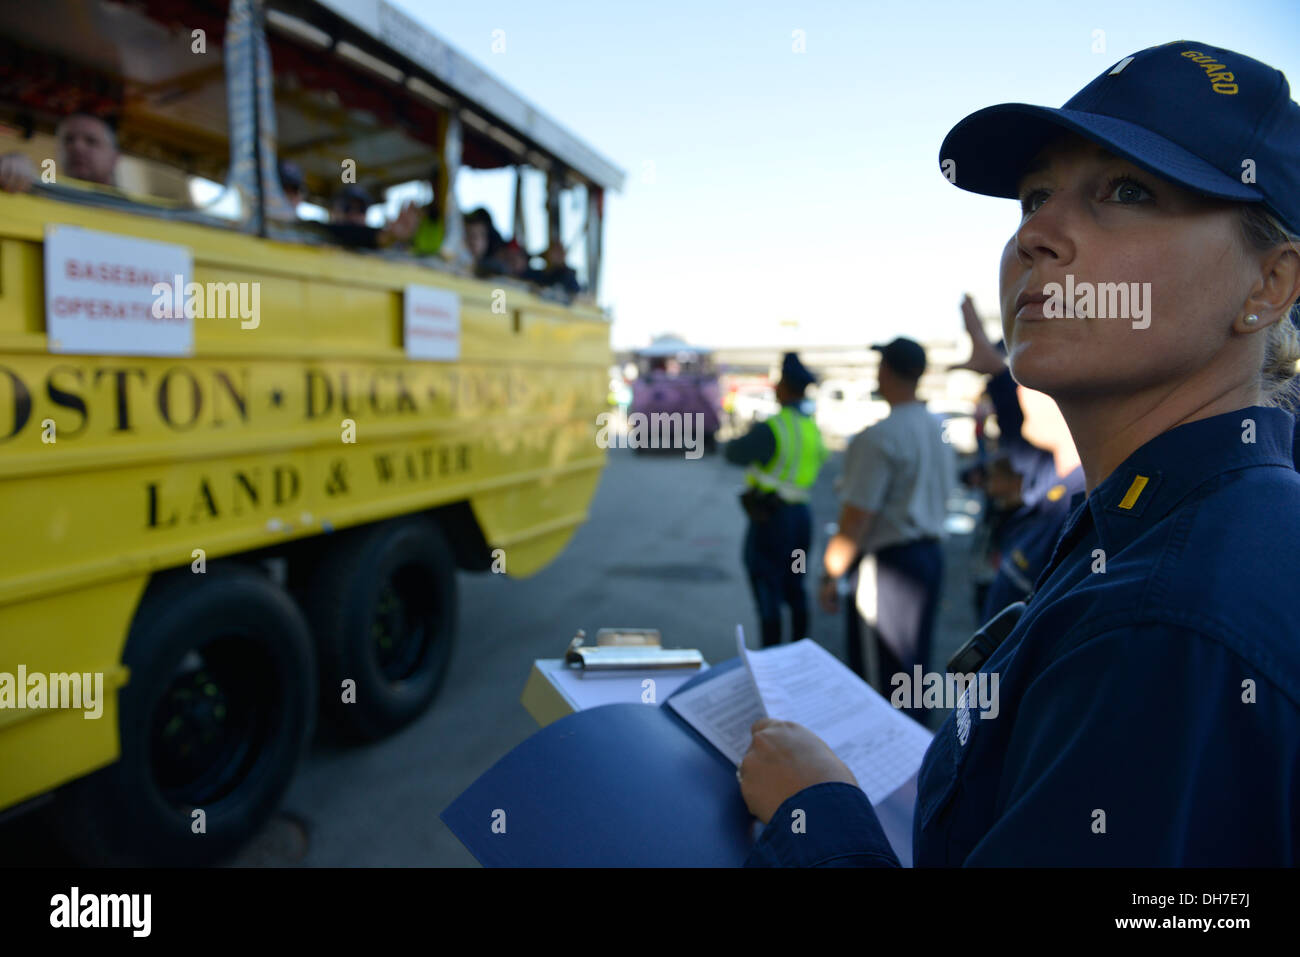 Ens. Nicole Emmons, from the Coast Guard Sector Boston Prevention Office, inspects a duck boat before it enters the Charles River during the Red Sox parade in Boston Nov. 2, 2013. The boats were inspected prior to entering the water to ensure they could s - Stock Image